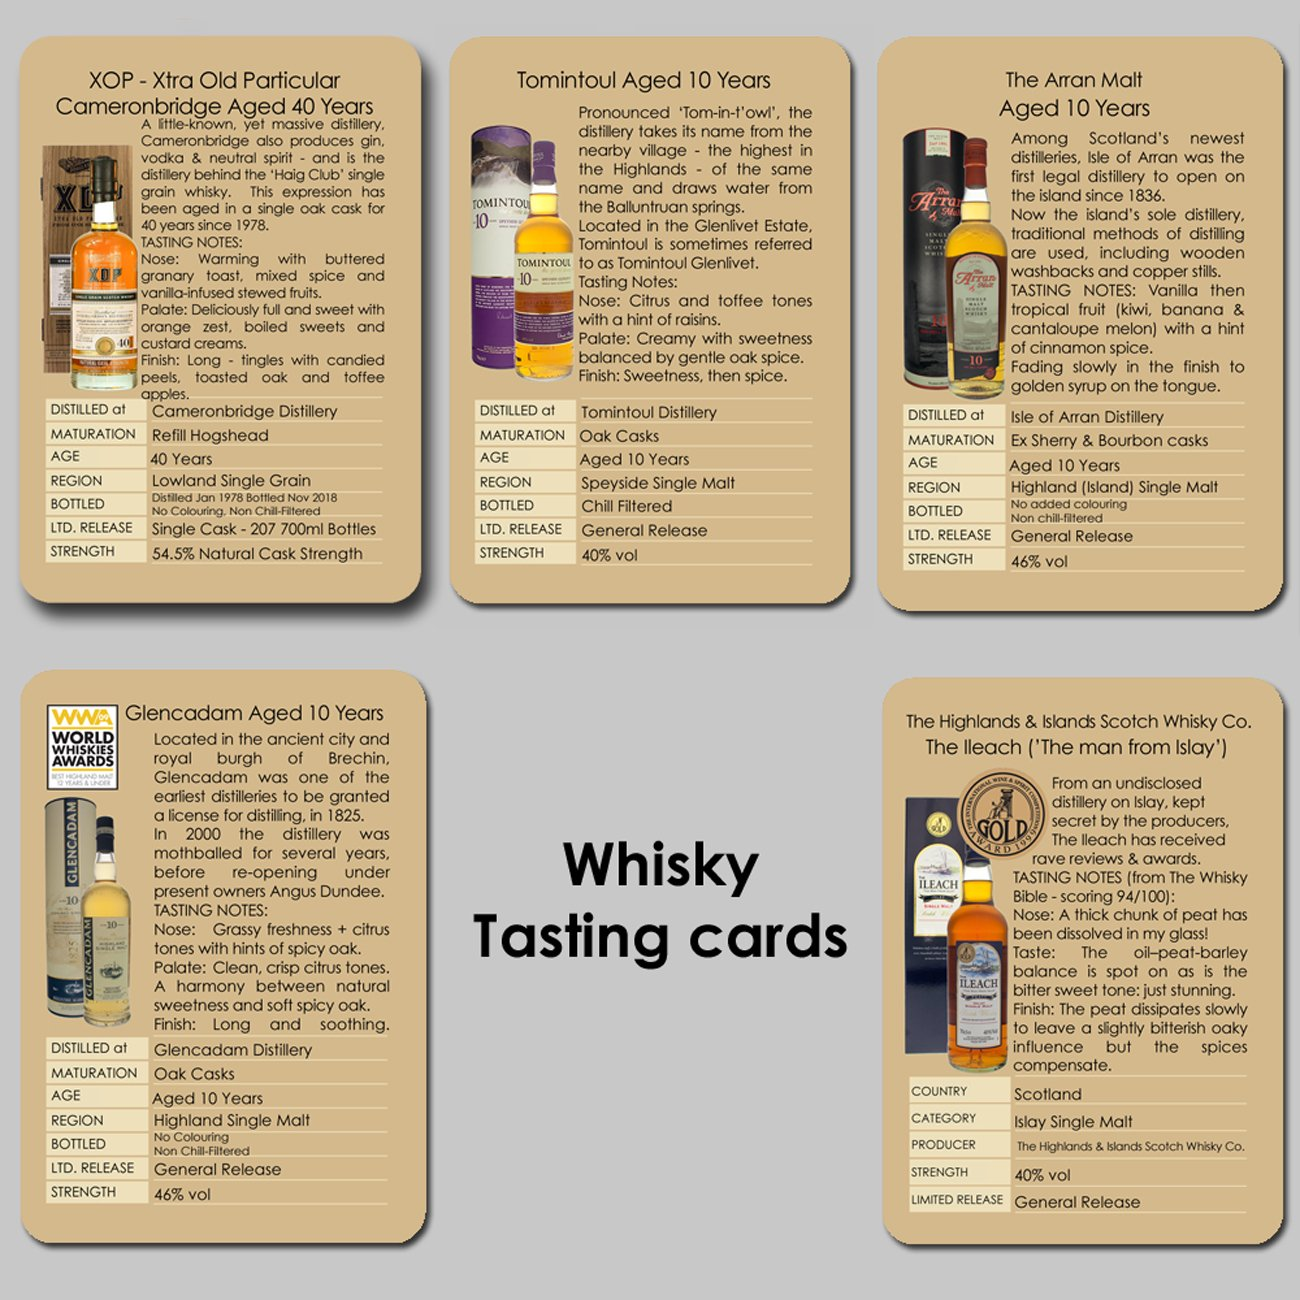 Individual tasting cards including 40 year old Scotch whisky.  Contains tasting notes and distillery information on Cameronbridge aged 40 years, Tomintoul, Glencadam, Arran Mal and The Ileach Islay single malt.